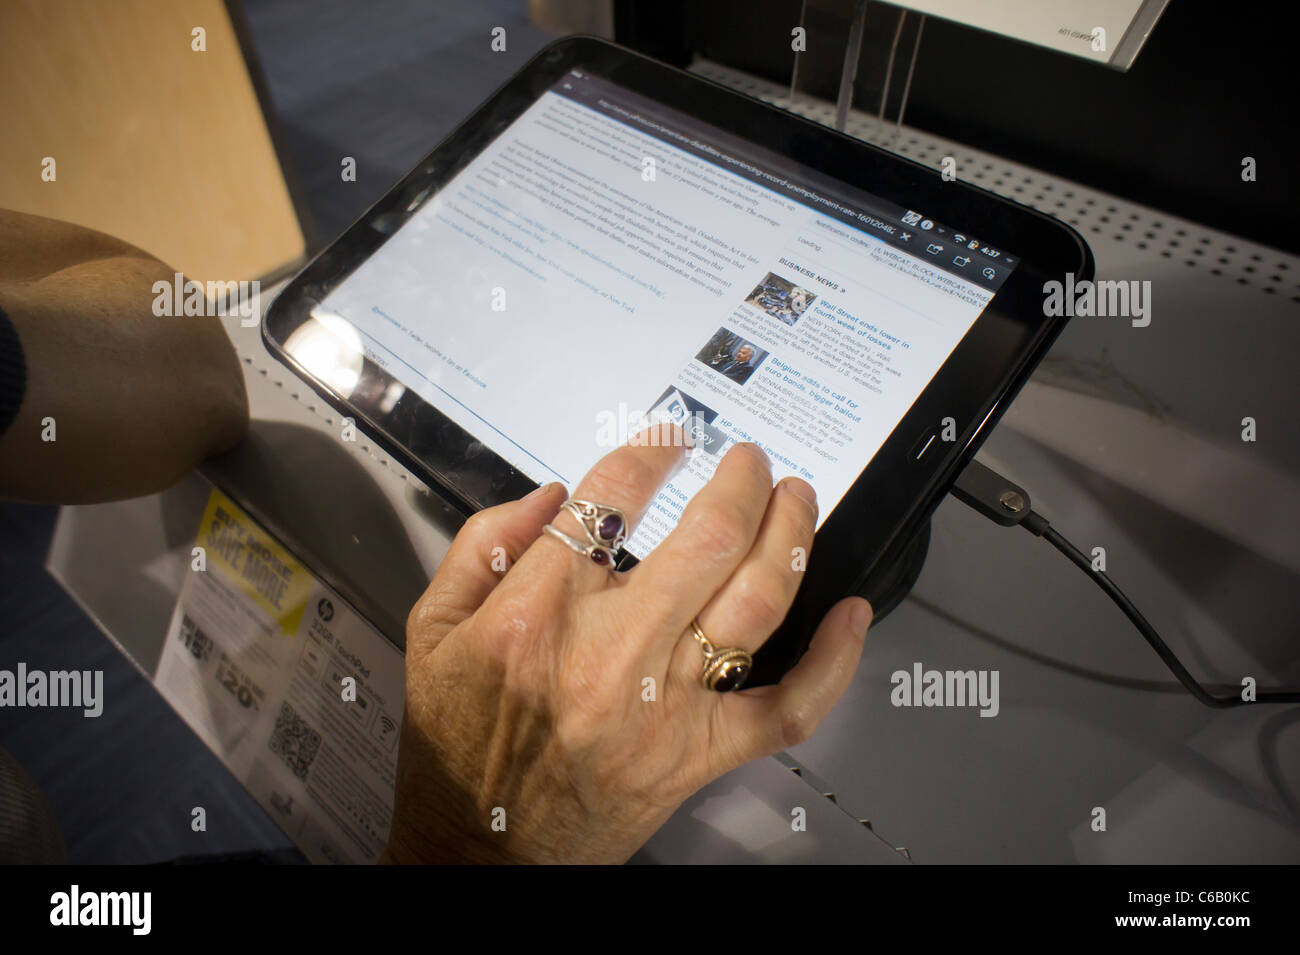 A shopper inspects an HP TouchPad tablet computer in a Best Buy electronics store in New York - Stock Image